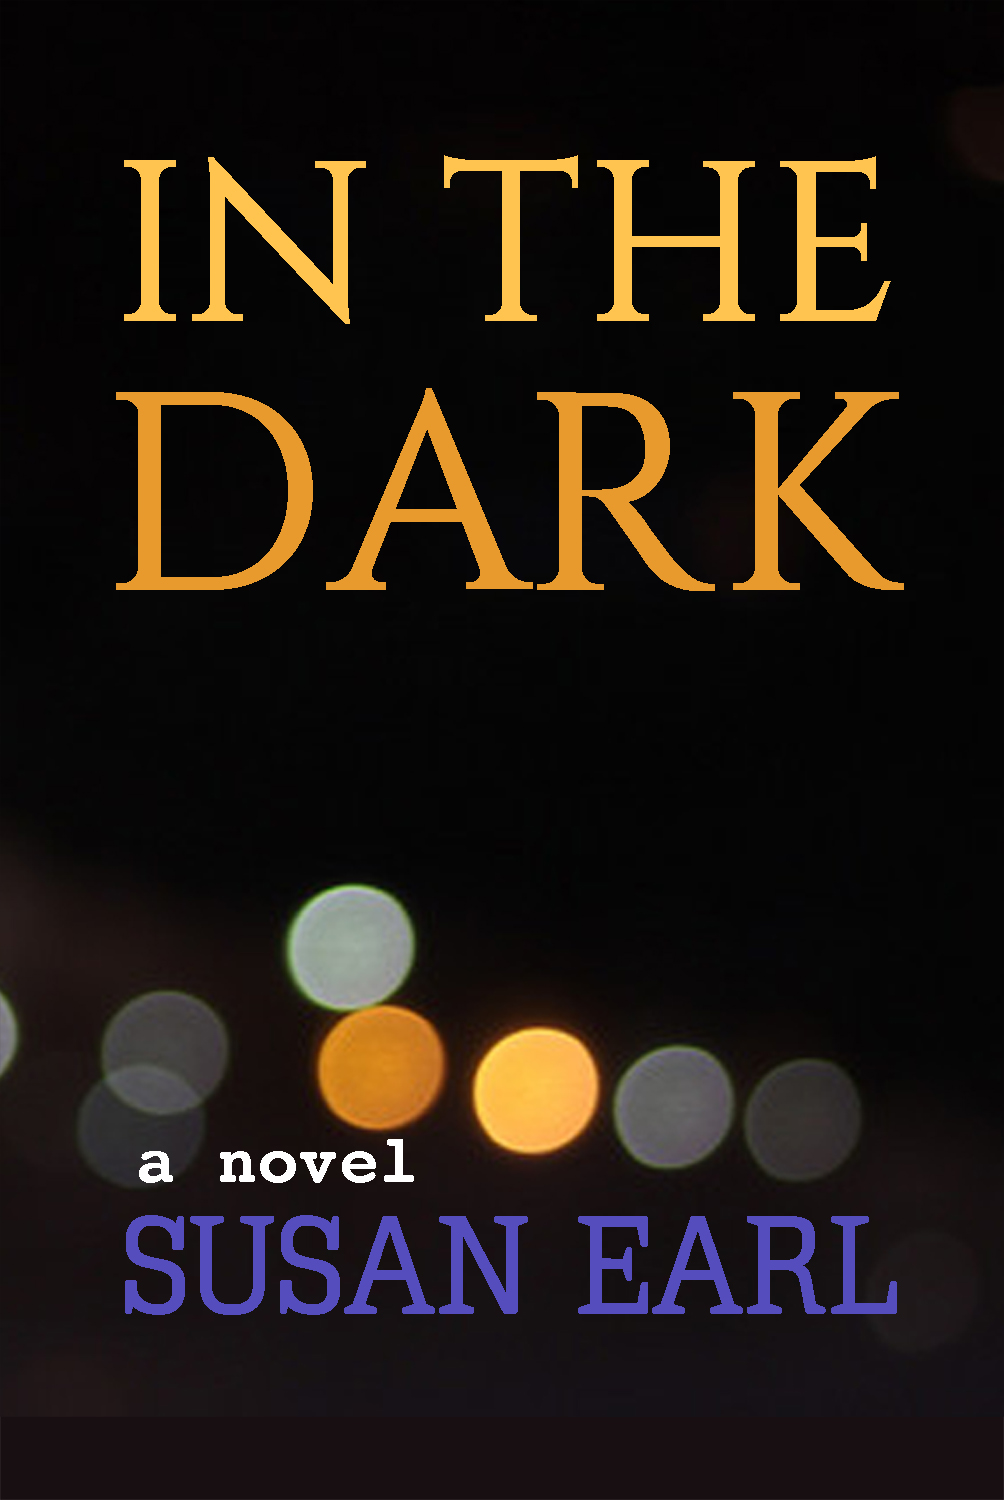 IntheDark_bookcoverdesign_web.jpg